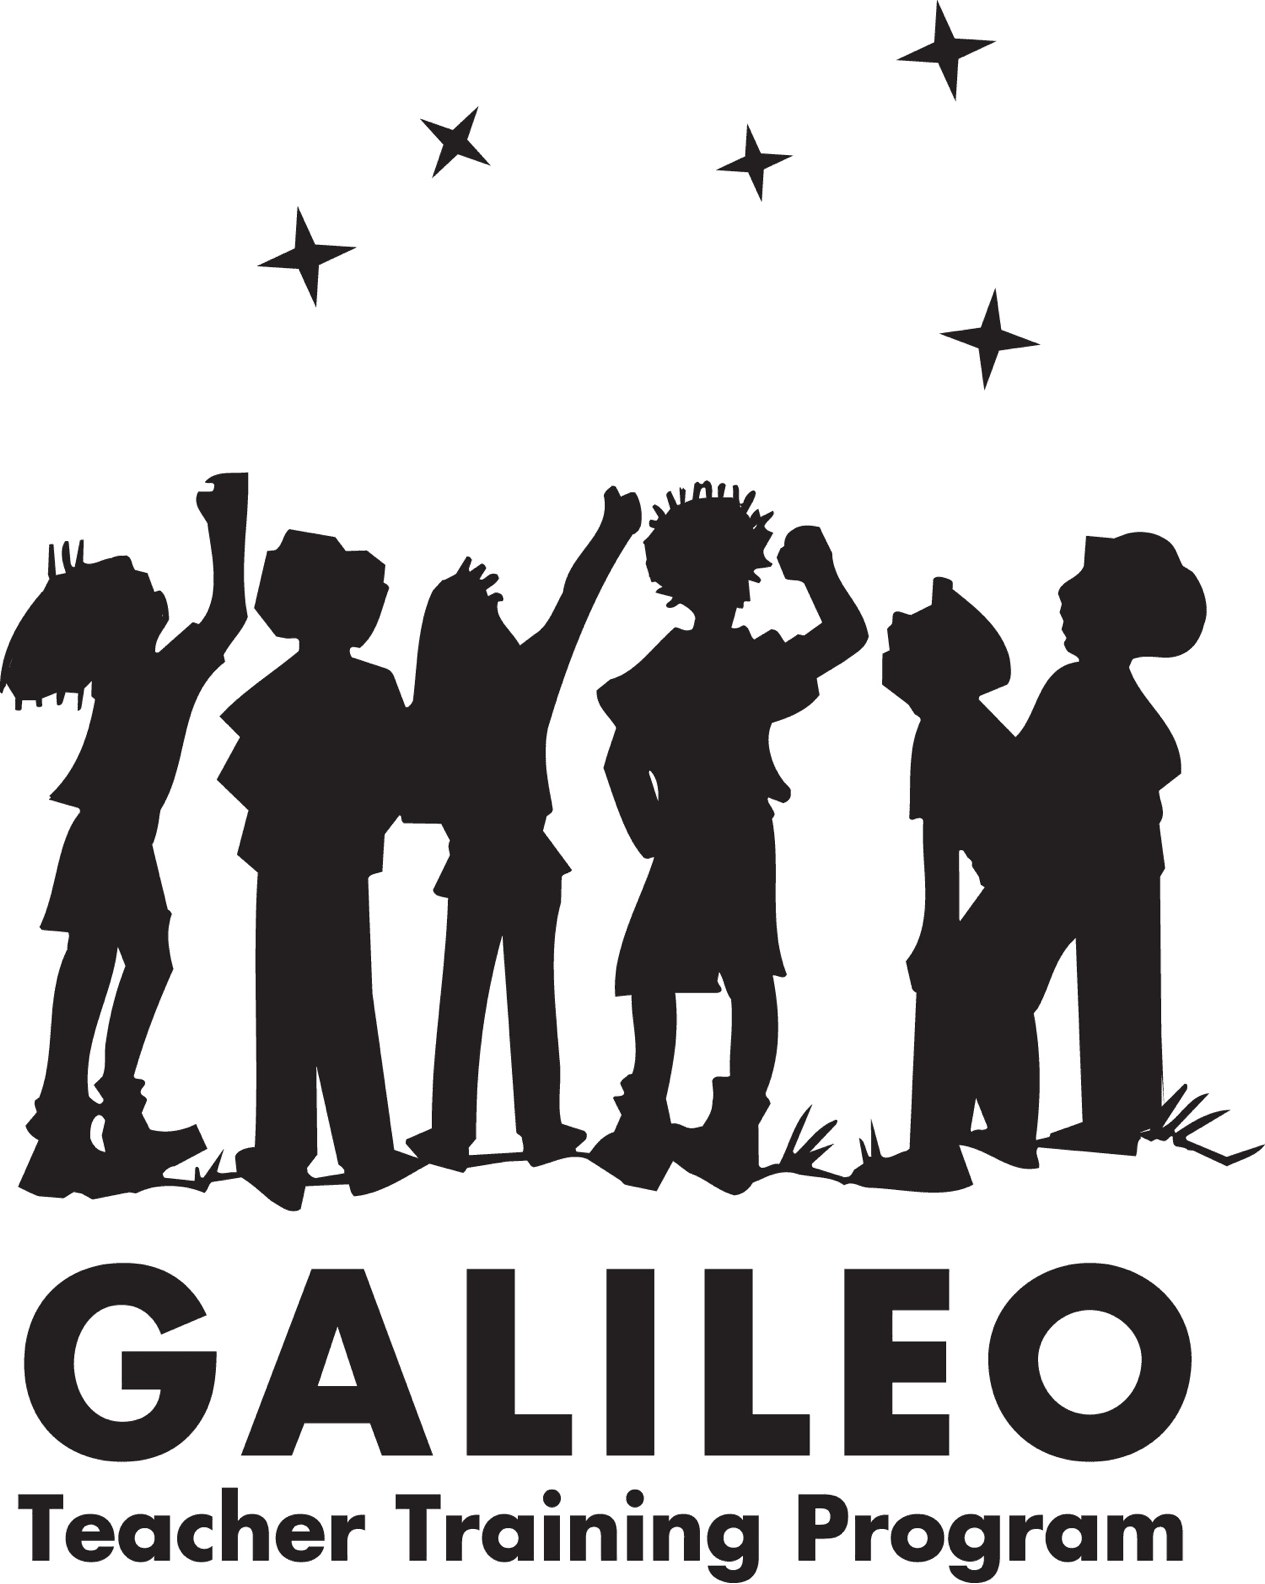 Galileo Teacher Training Program (Programa mundial de formação de professores)